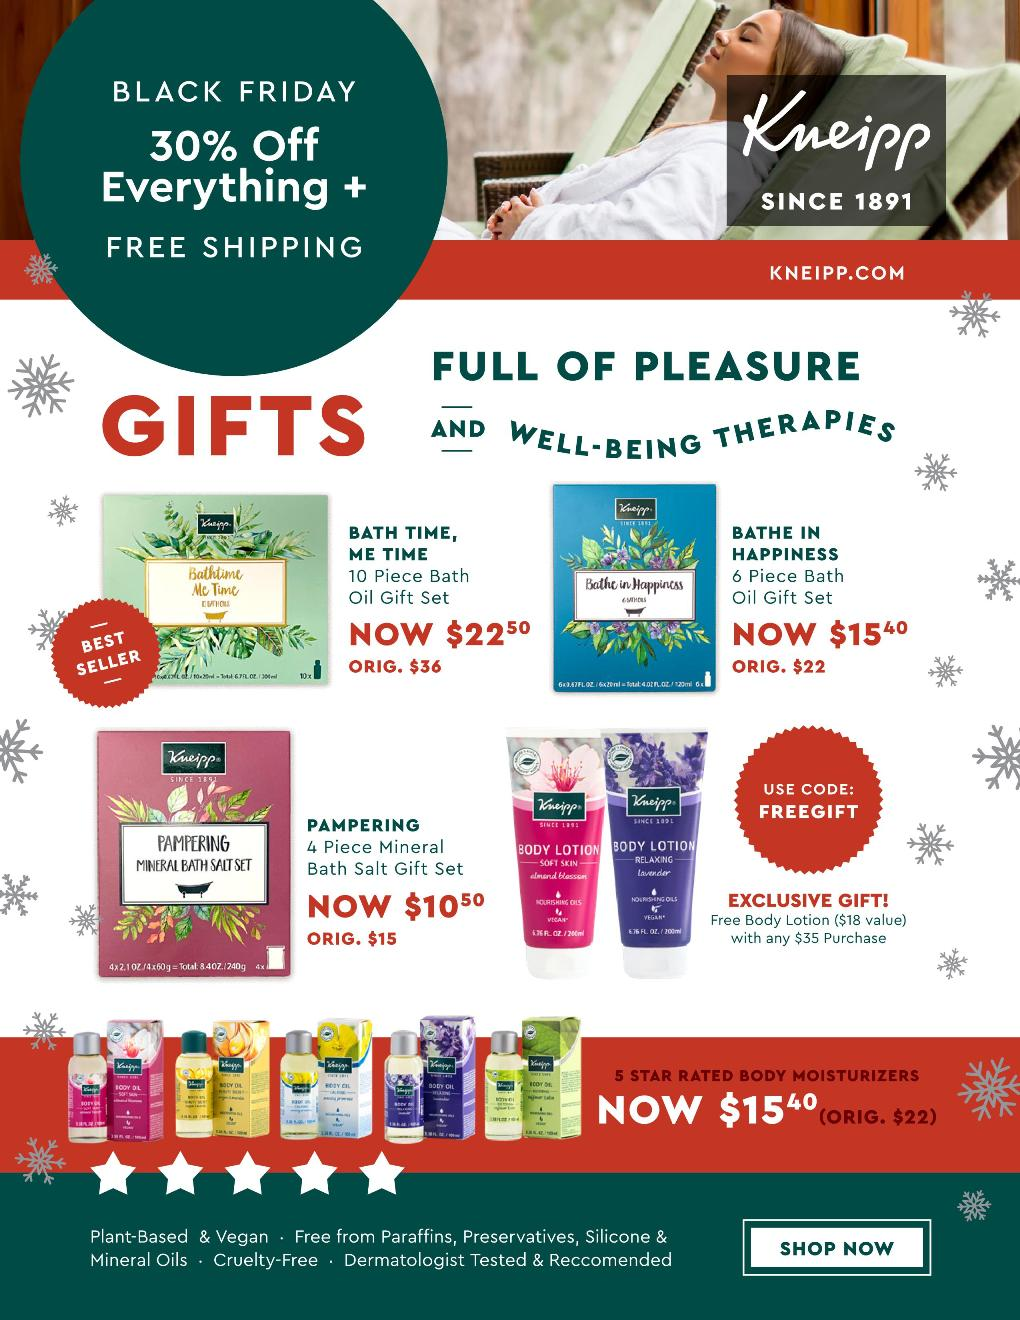 Kneipp Black Friday page 5